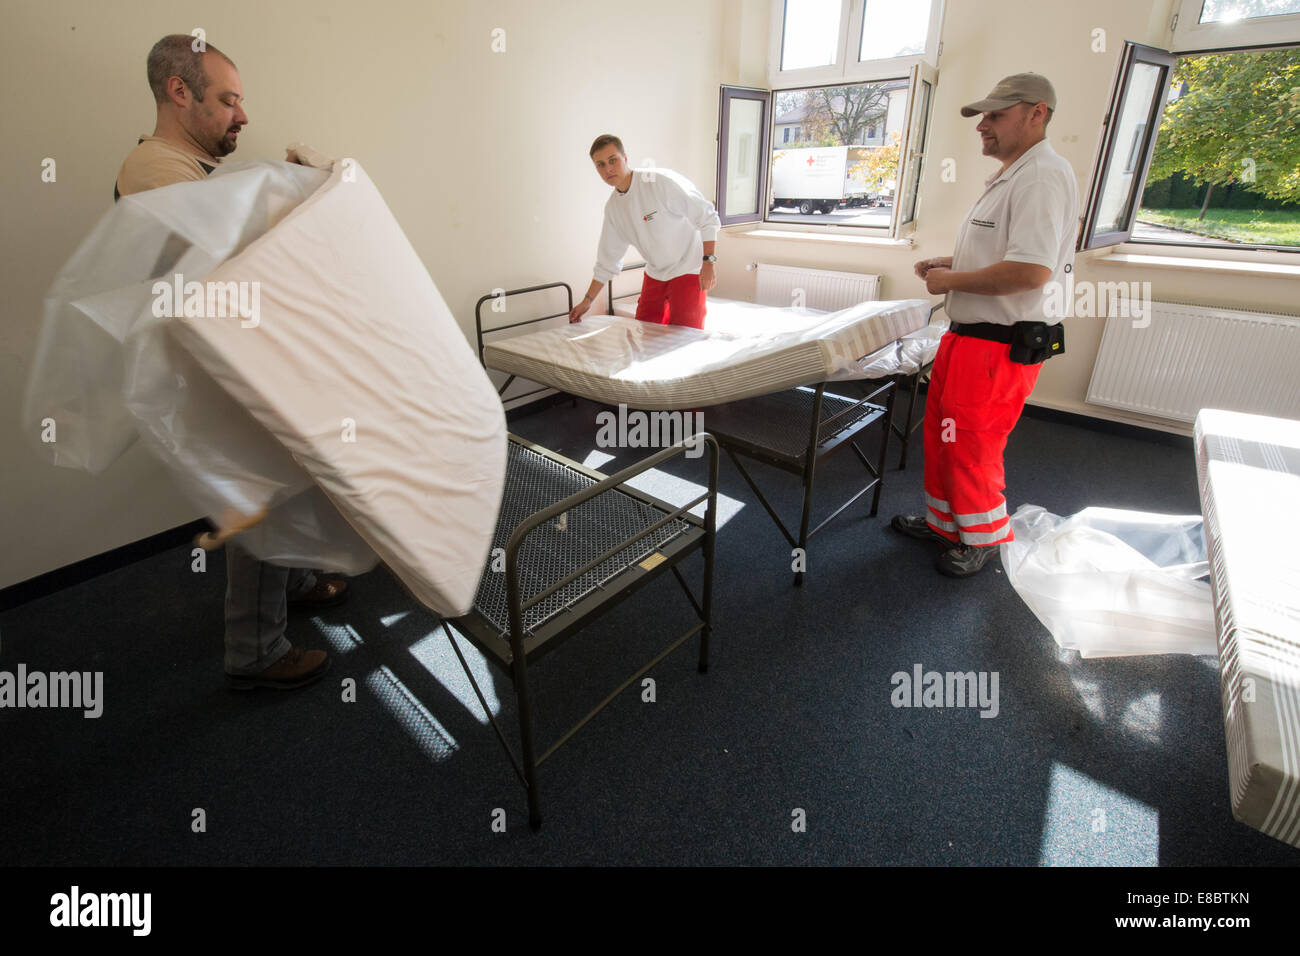 Aids from the Bavarian Red Cross (BRK) set up emergency housing for around 300 refugees in the former American barracks - Stock Image